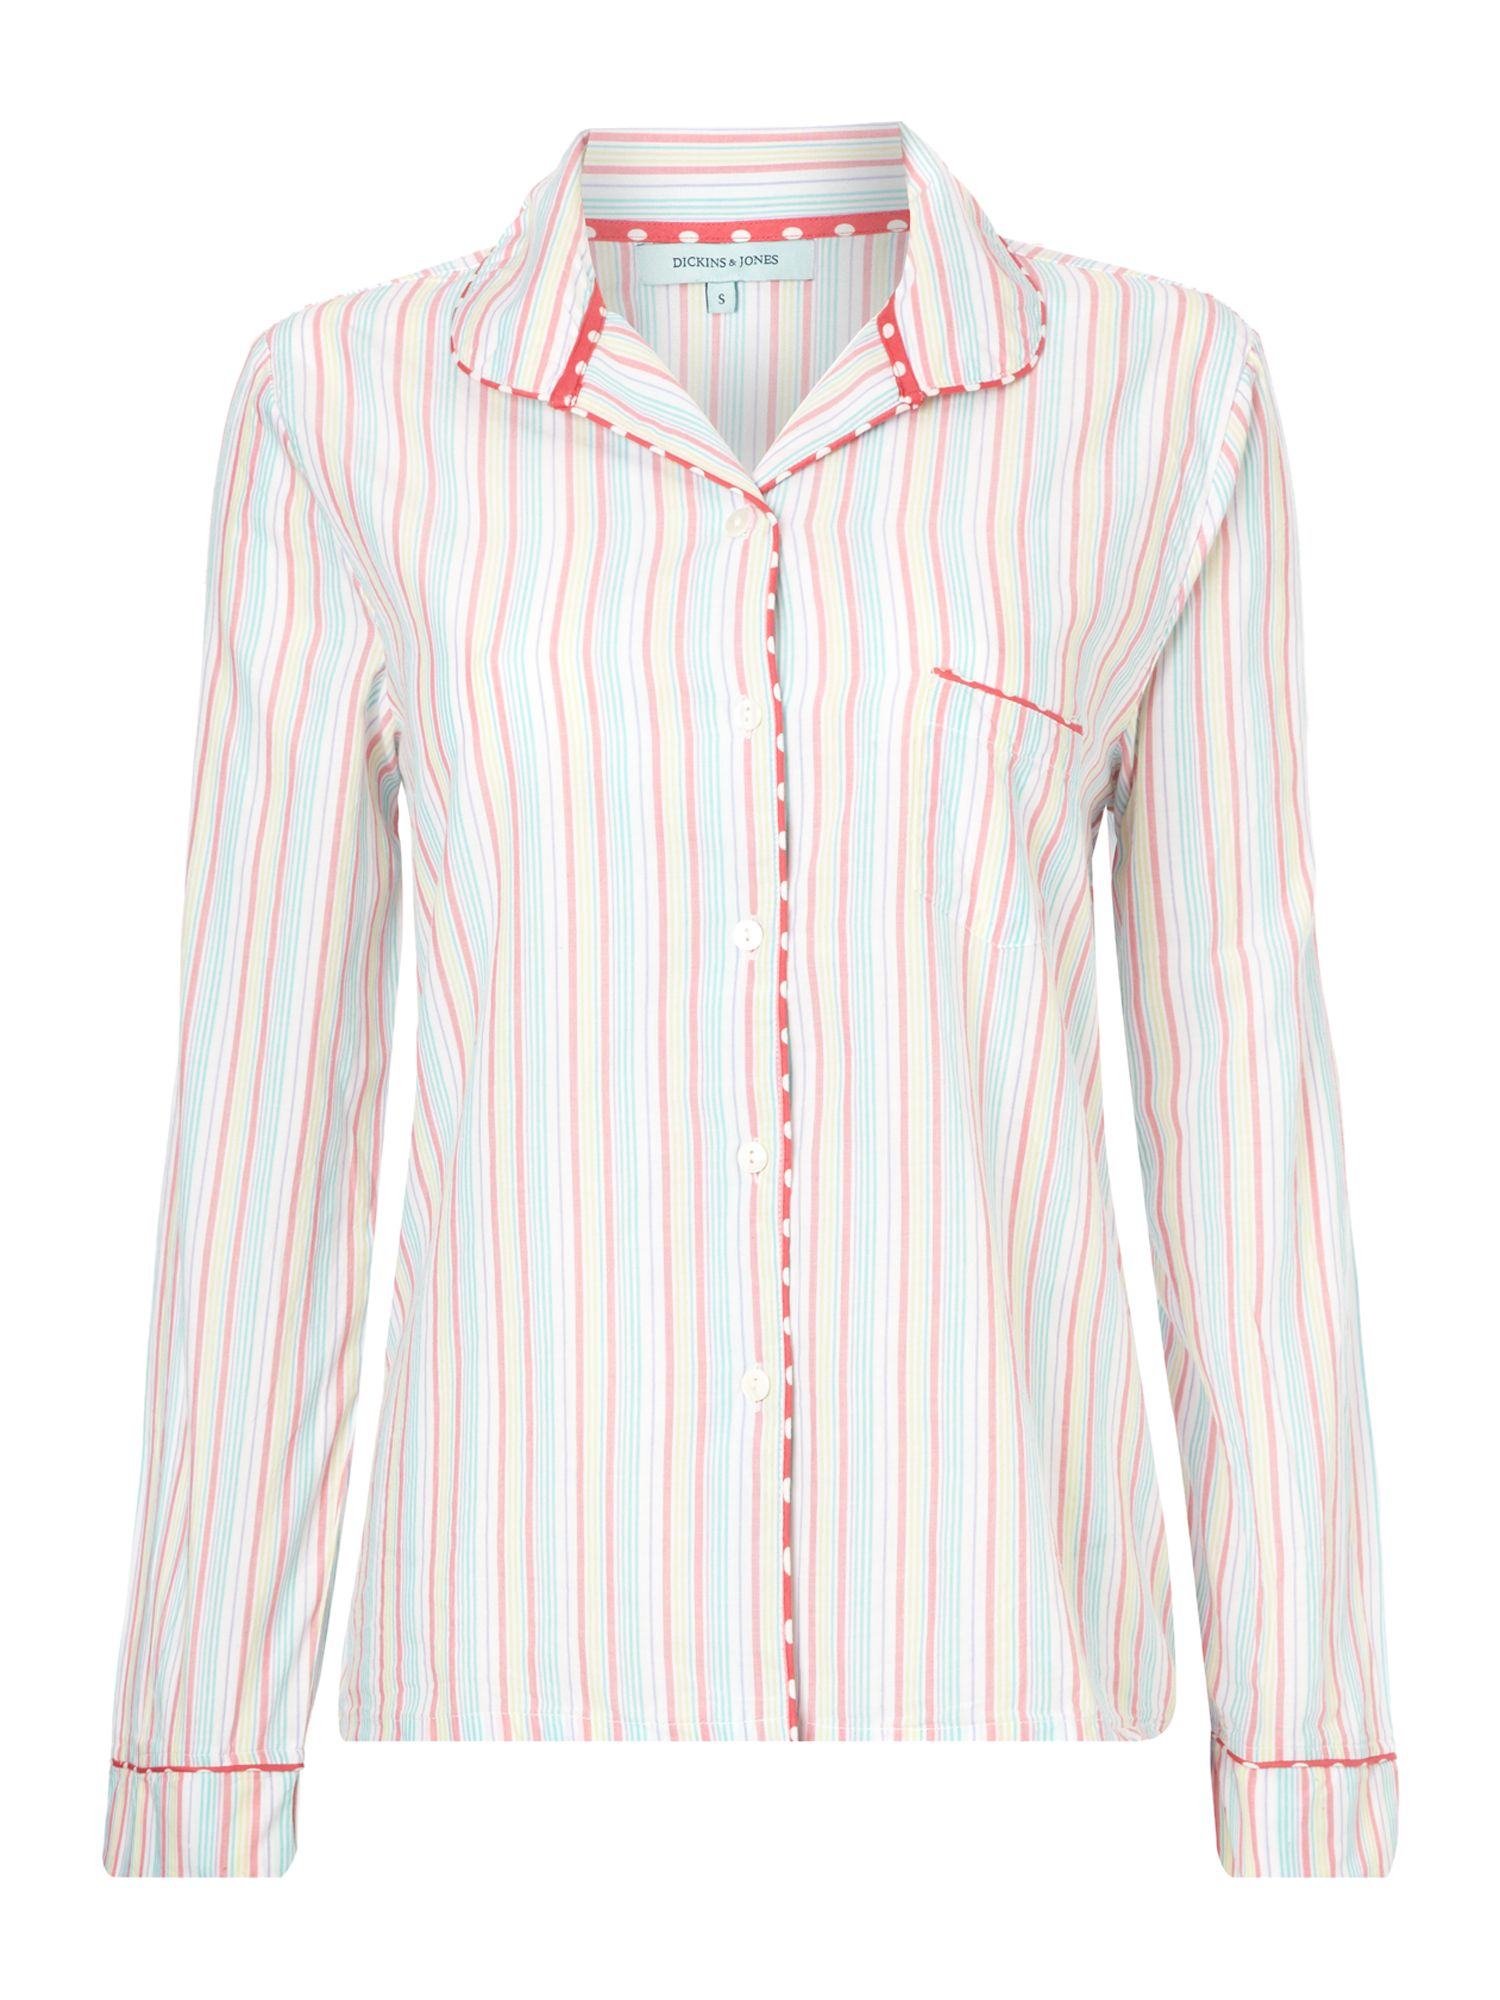 Stripe PJ top